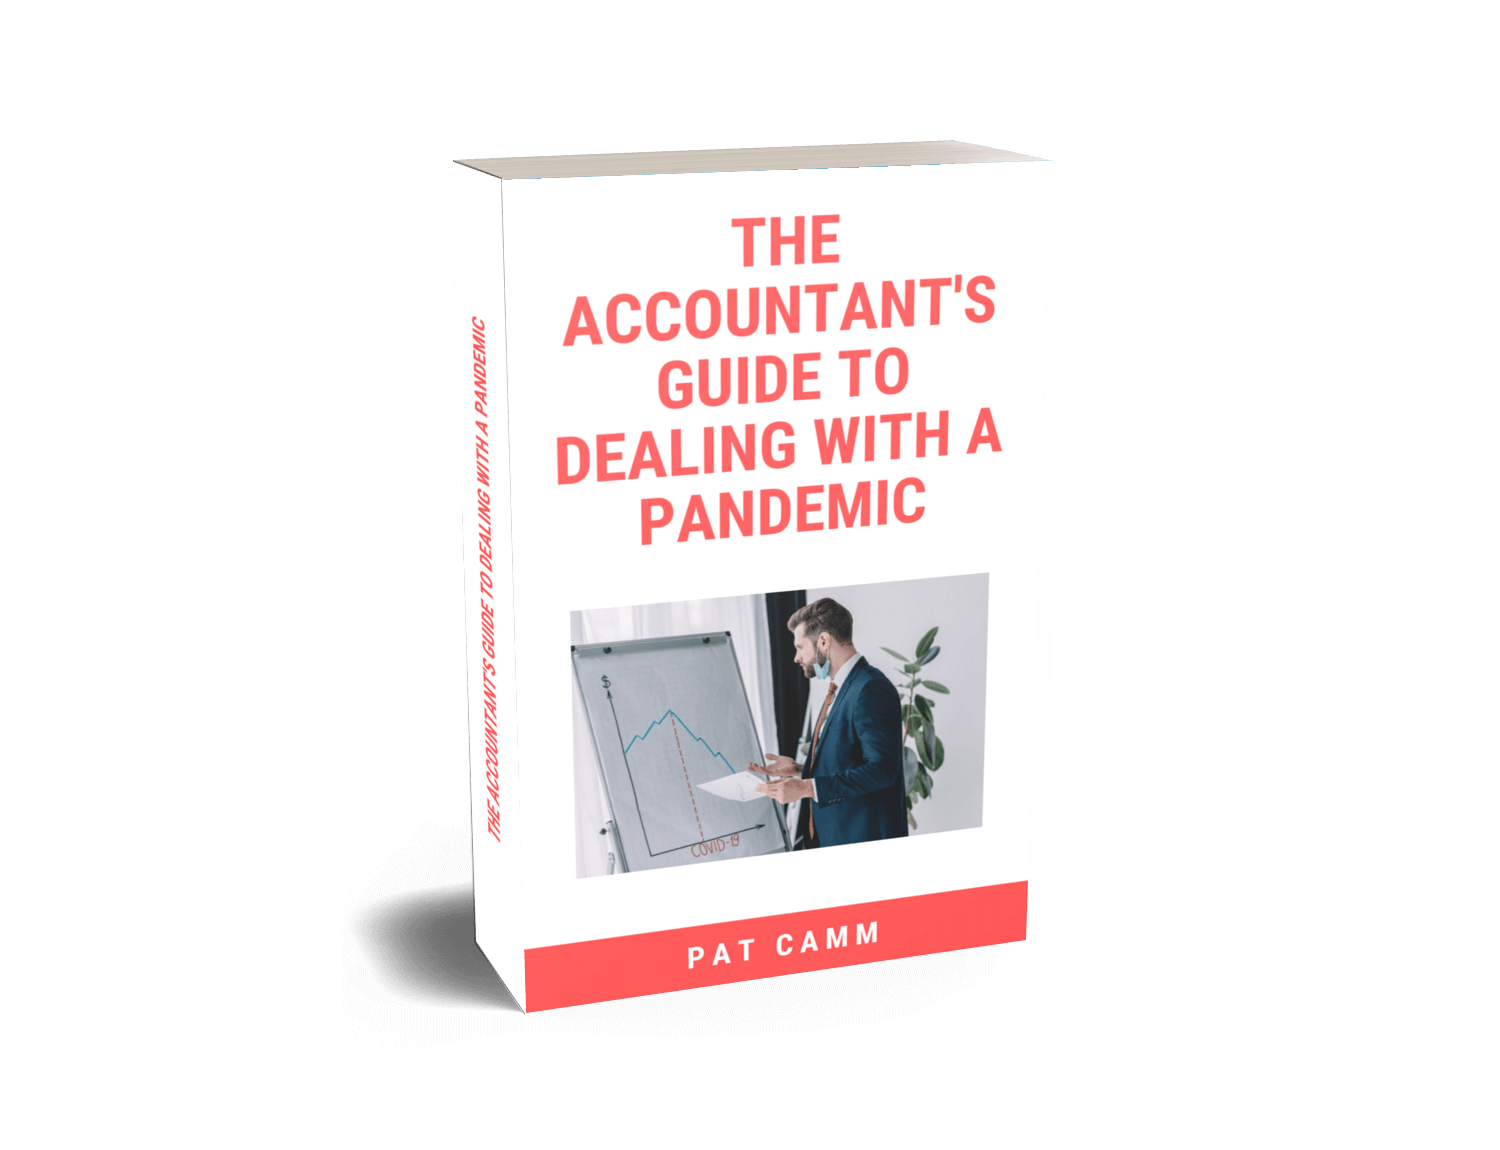 The Accountants Guide to Dealing with a Pandemic